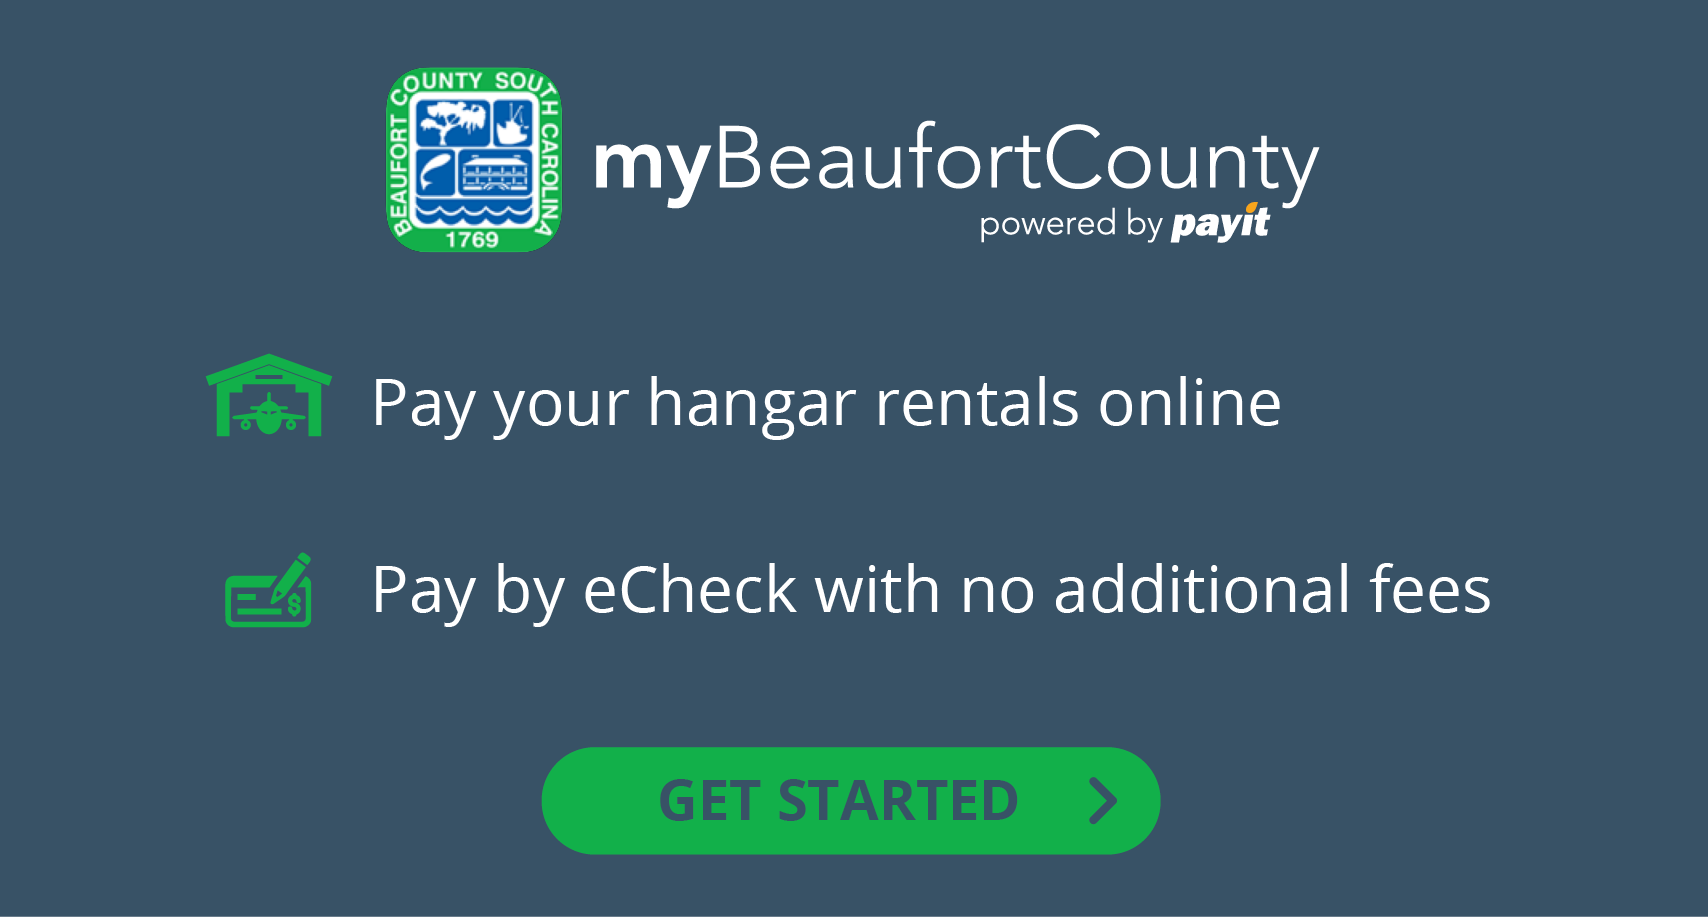 Pay your hangar rentals online.